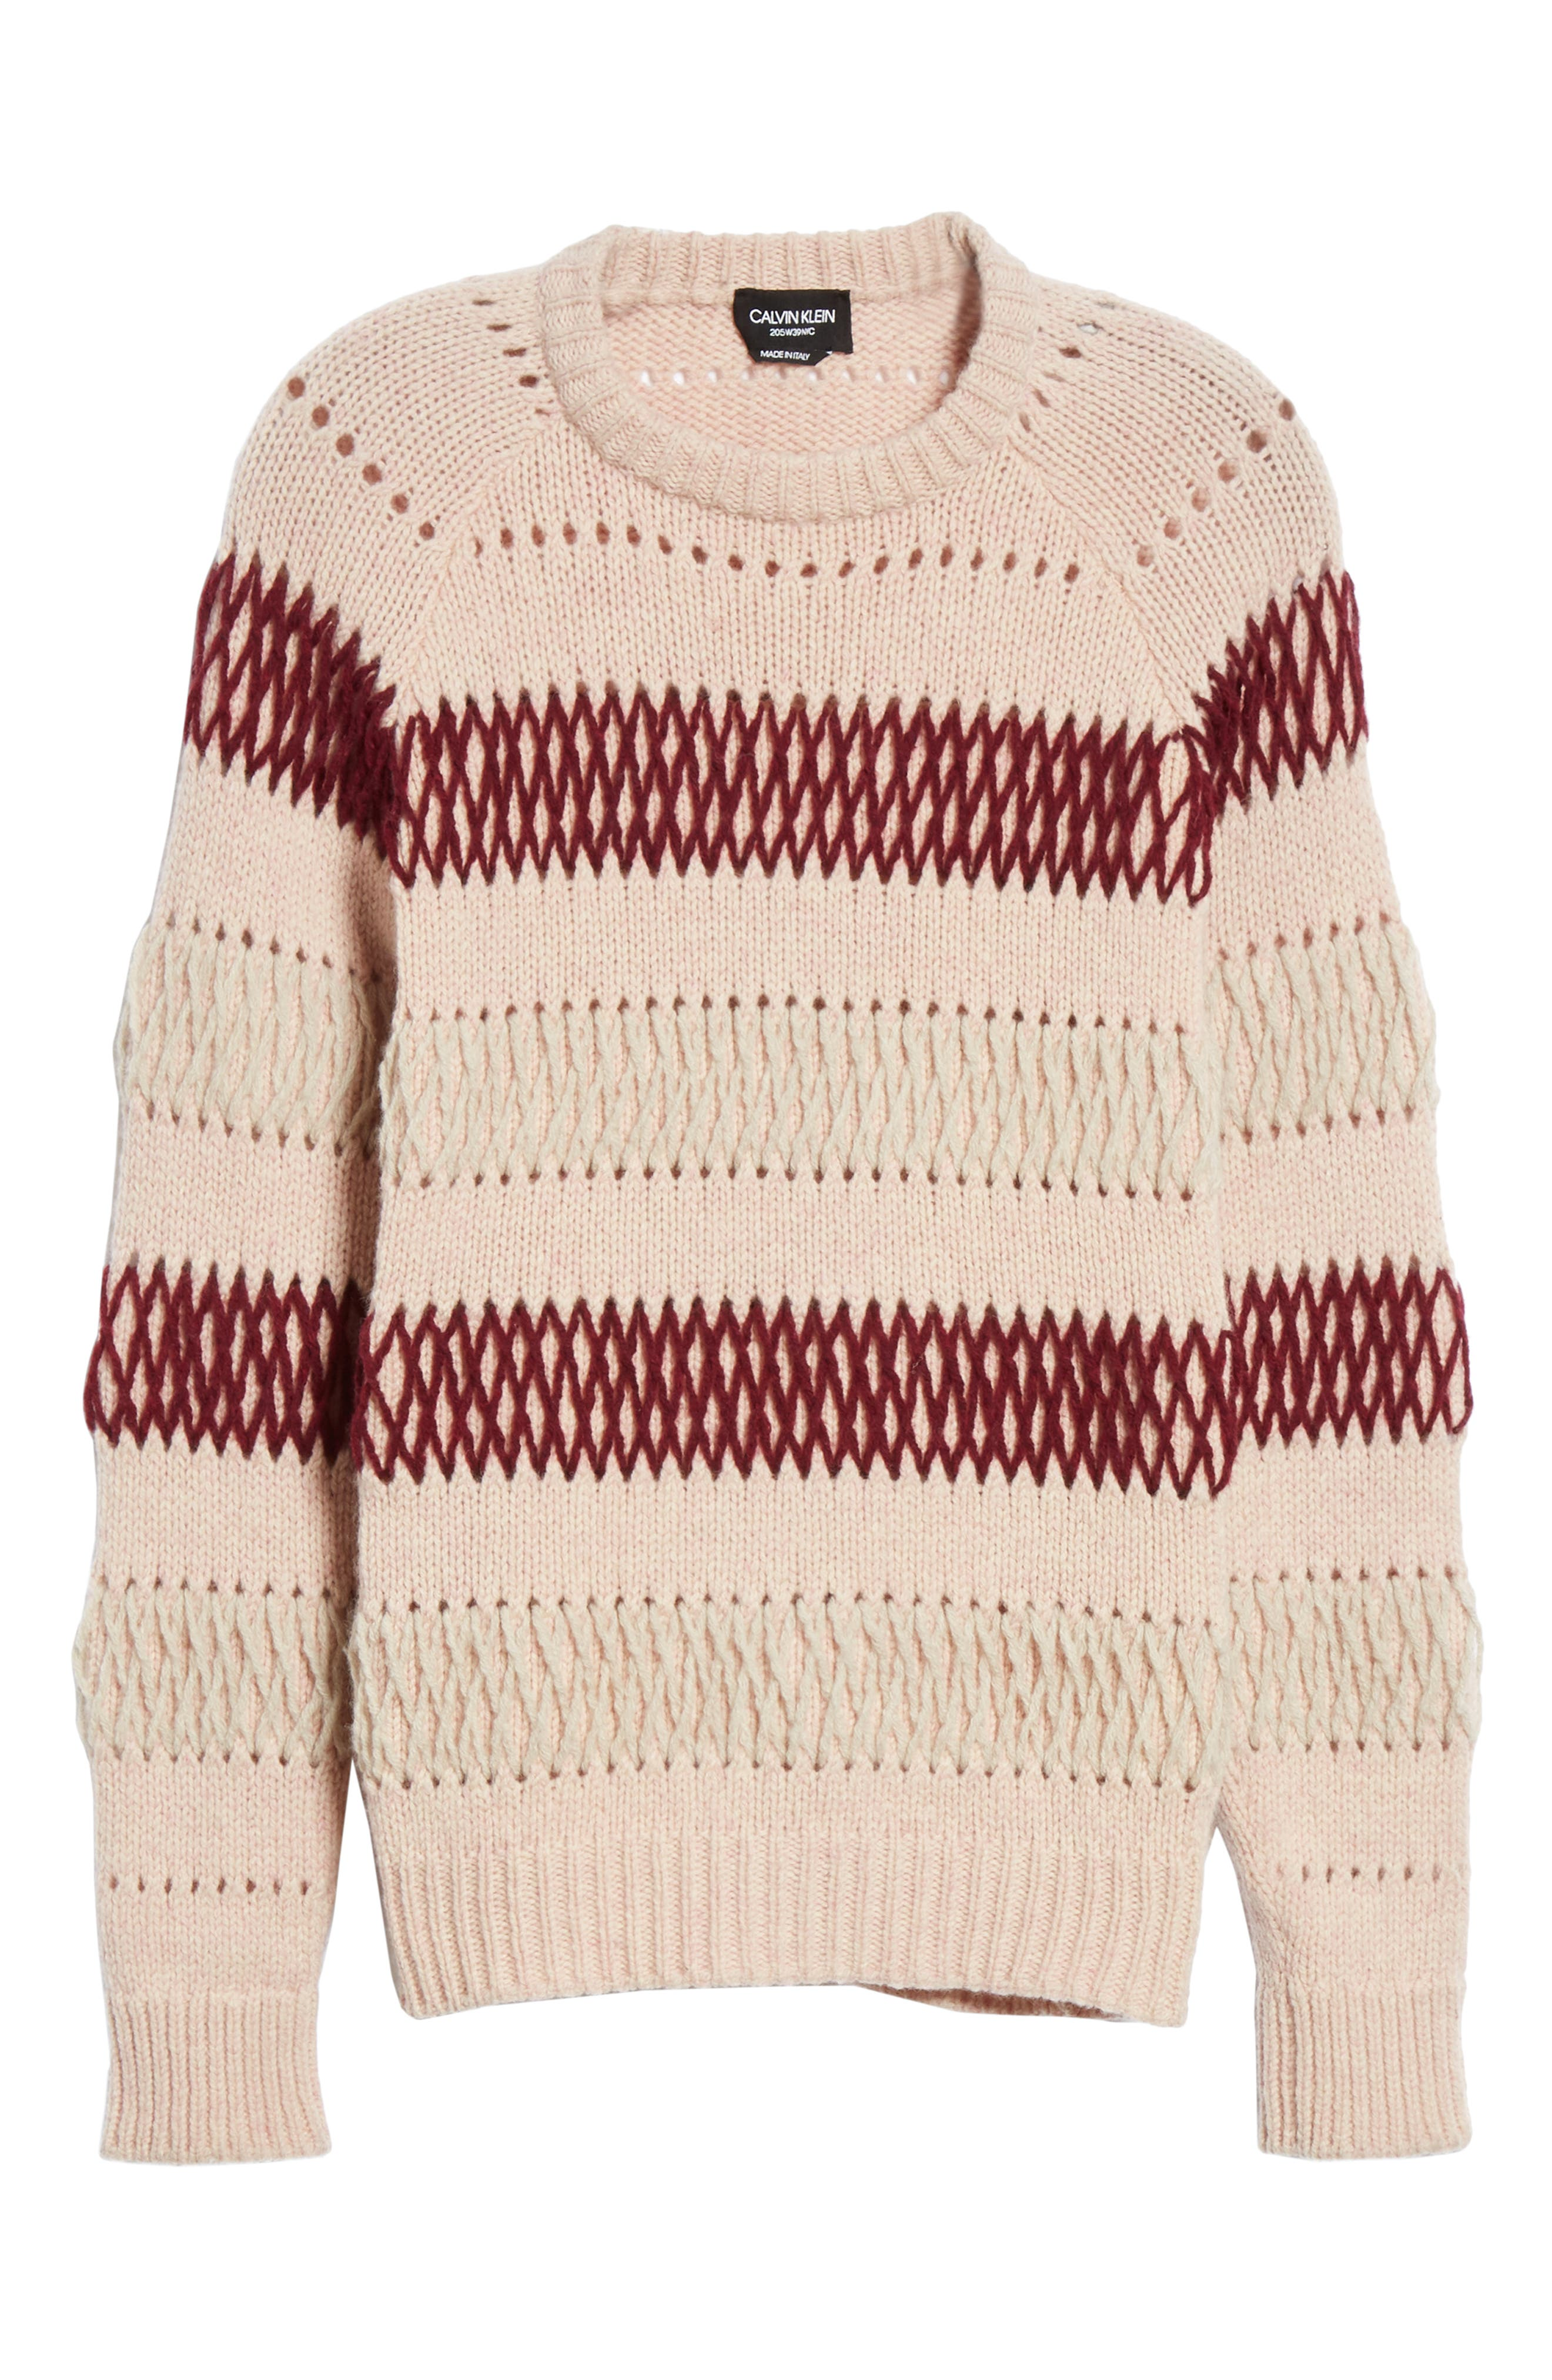 Embroidered Stripe Wool Sweater,                             Alternate thumbnail 6, color,                             650